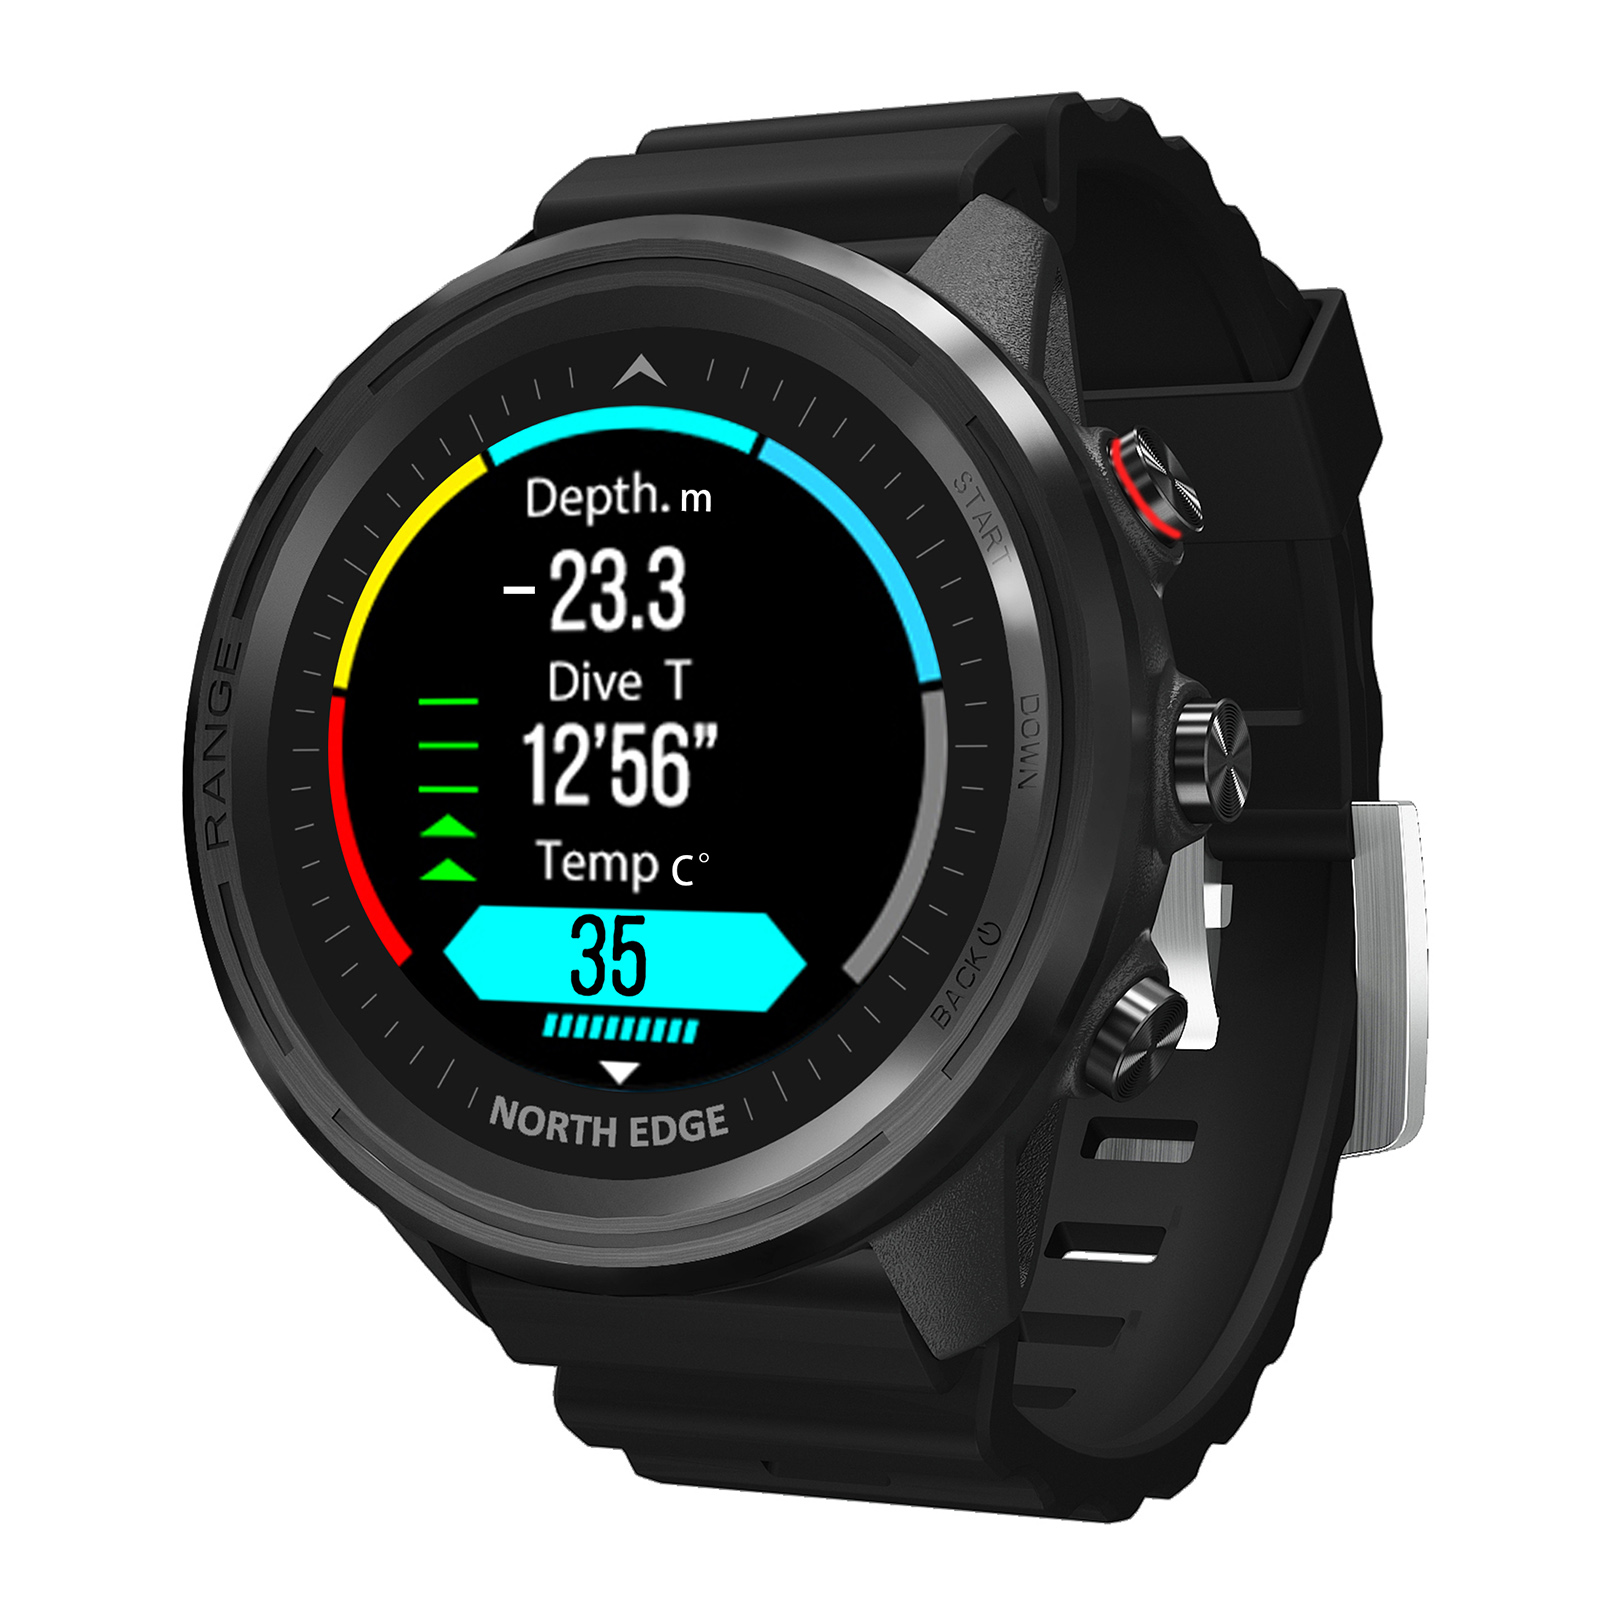 Permalink to NORTH EDGE Range5 GPS Outdoor Smart Sports Waterproof Watch Barometric Compass Temperature Bluetooth Heart Rate Diving Watch